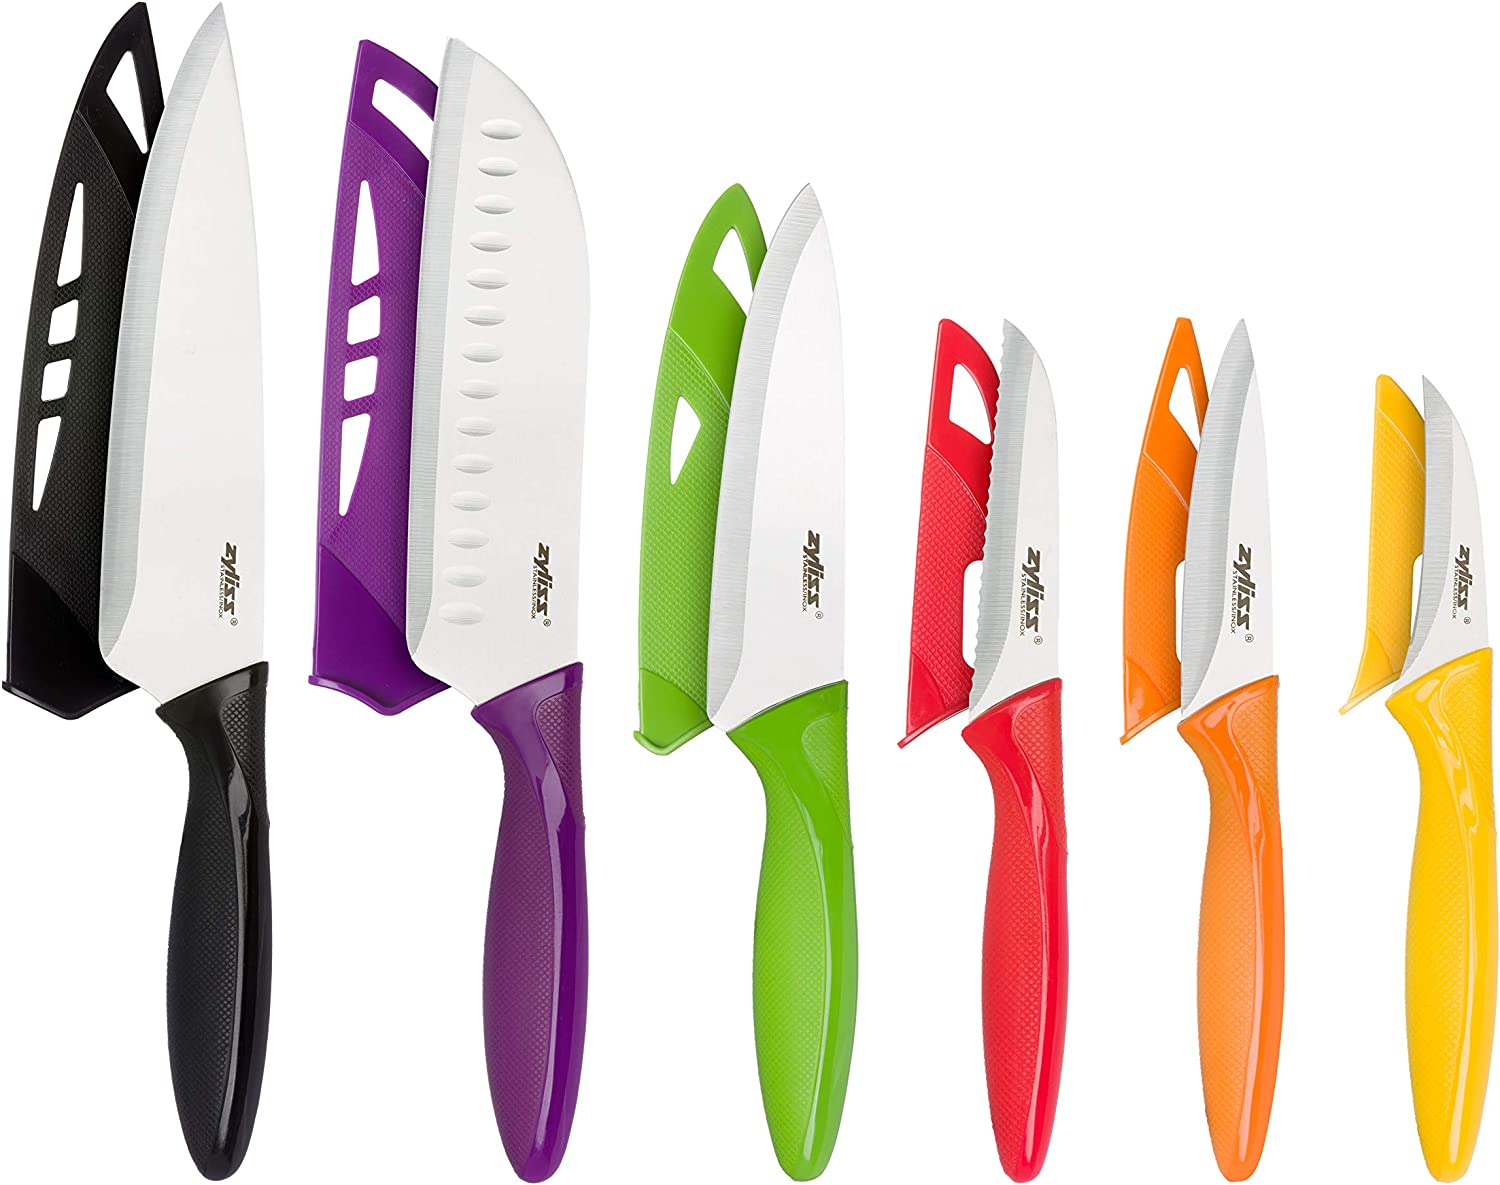 Best stainless-steel knife set with sheath covers